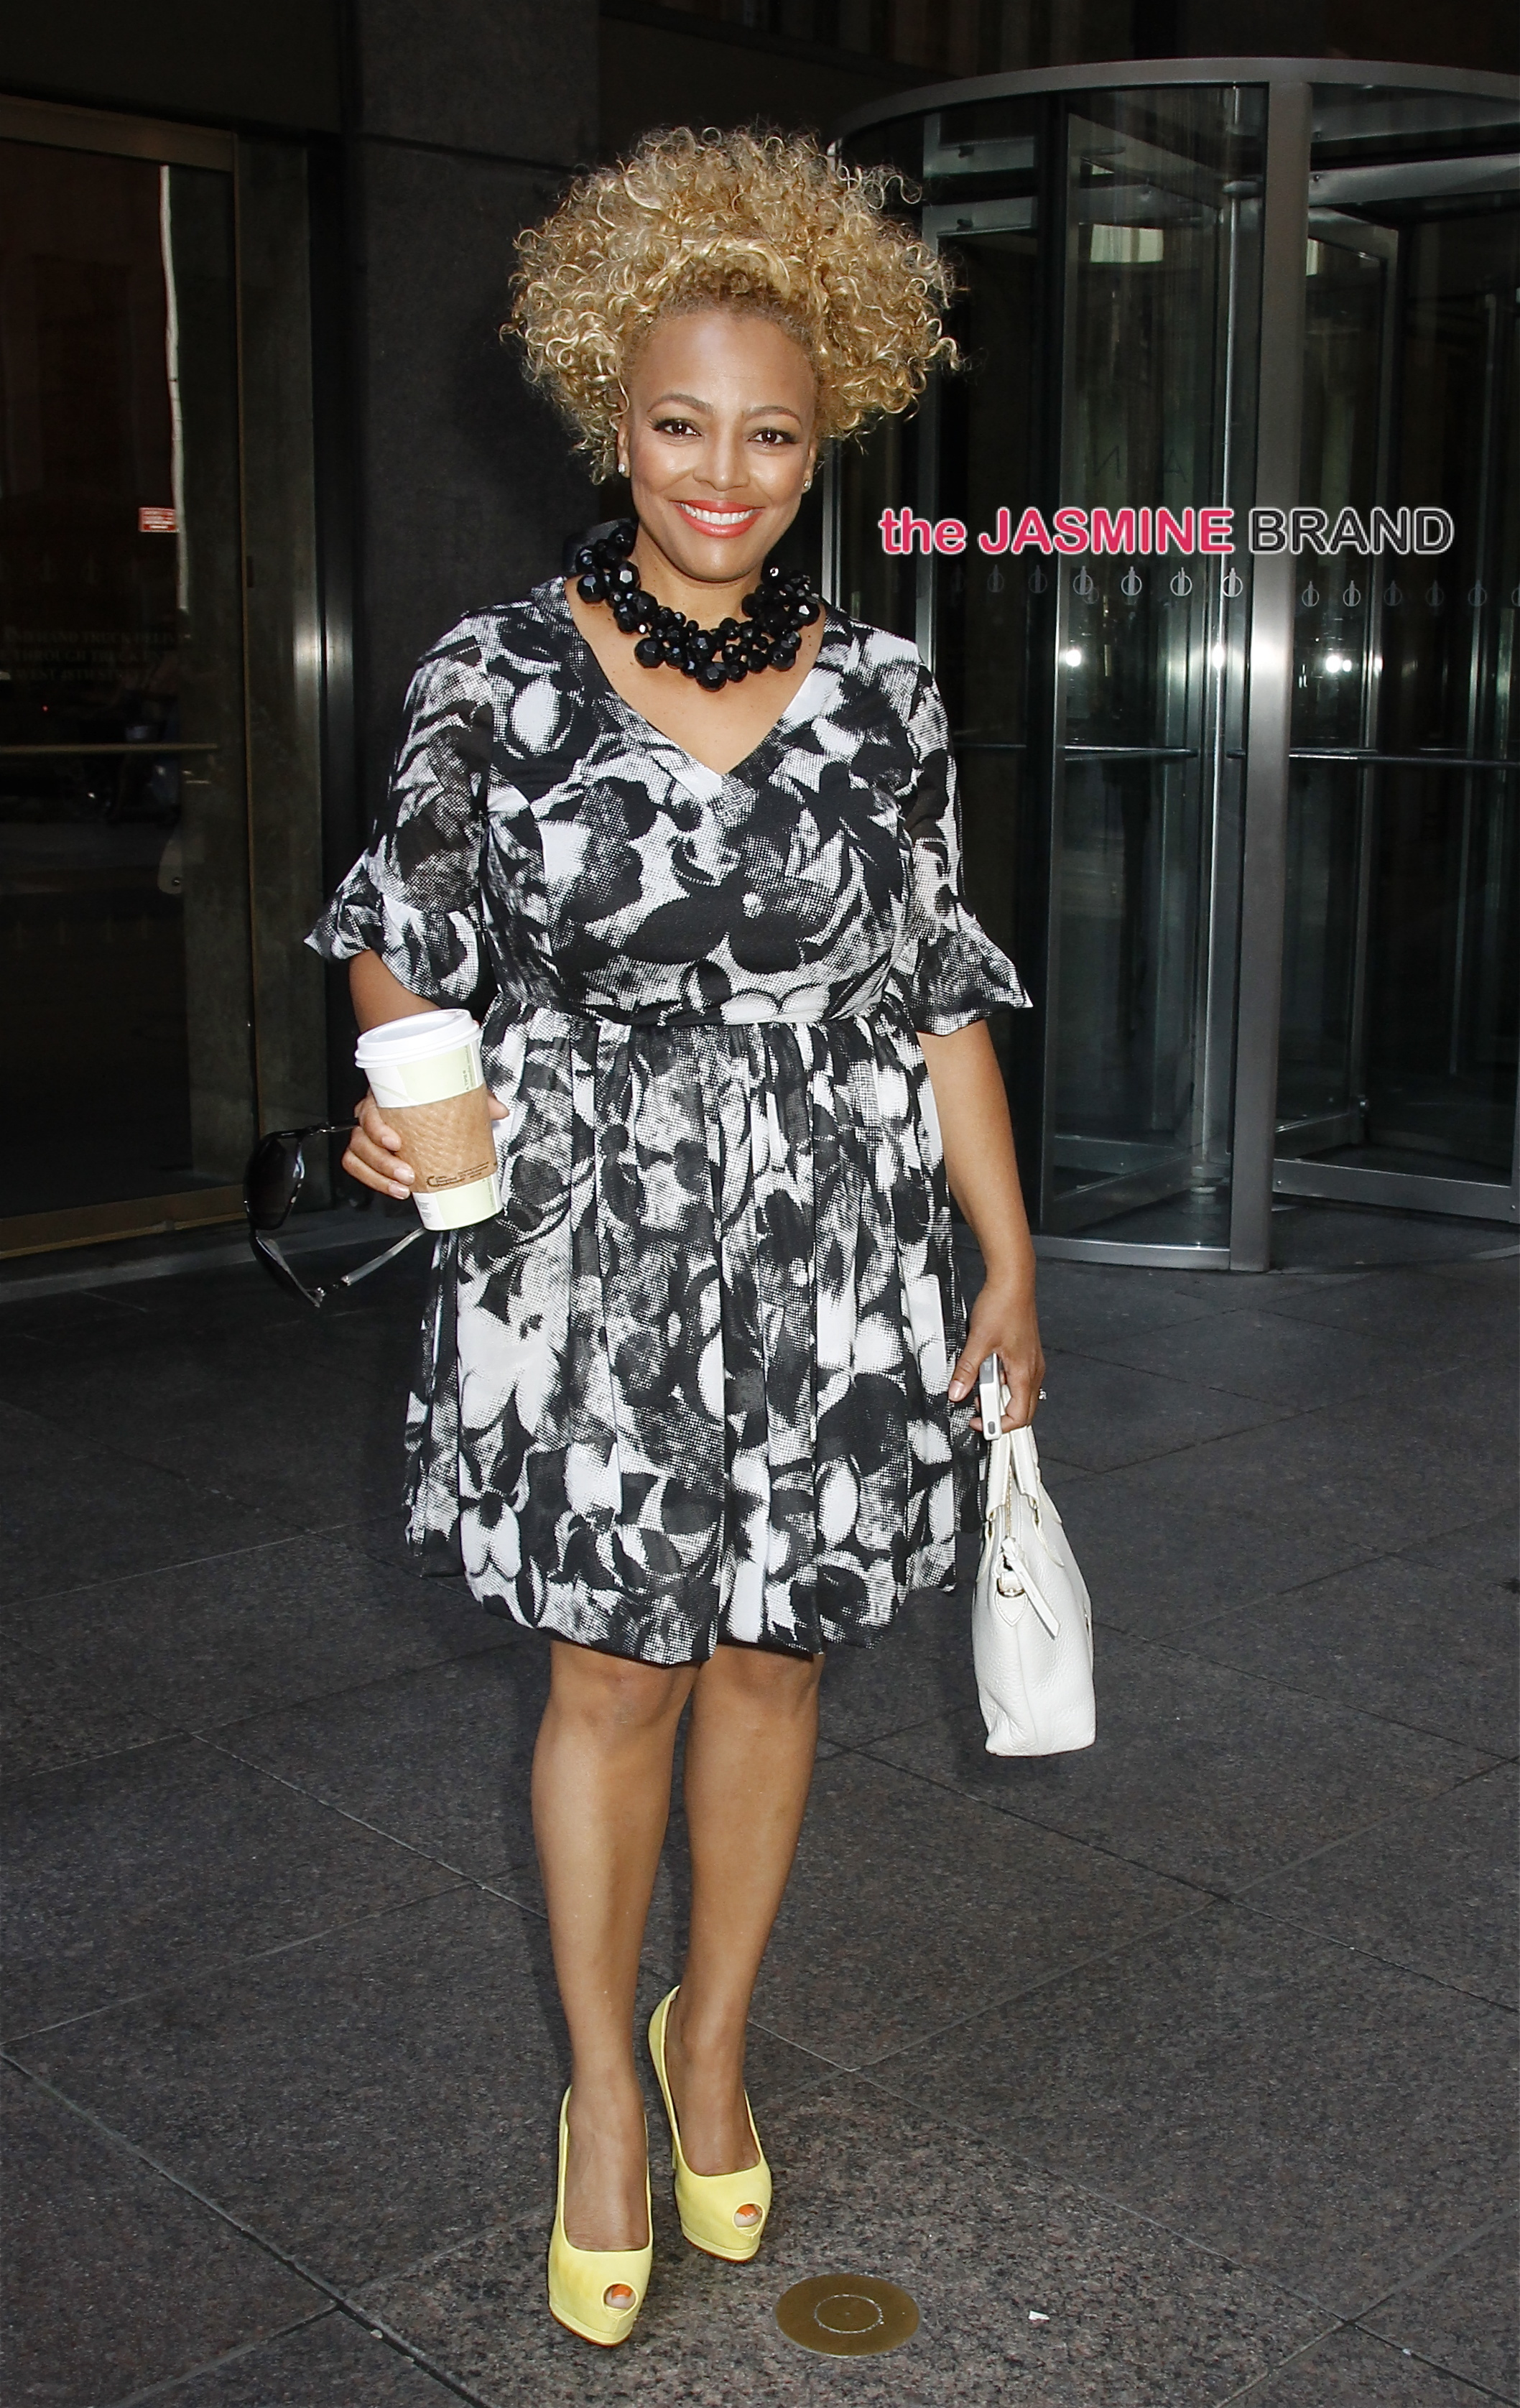 'Facts of Life' star, Kim Fields, looking beautiful in a black and white dress as she leaves Sirius XM studios in NYC